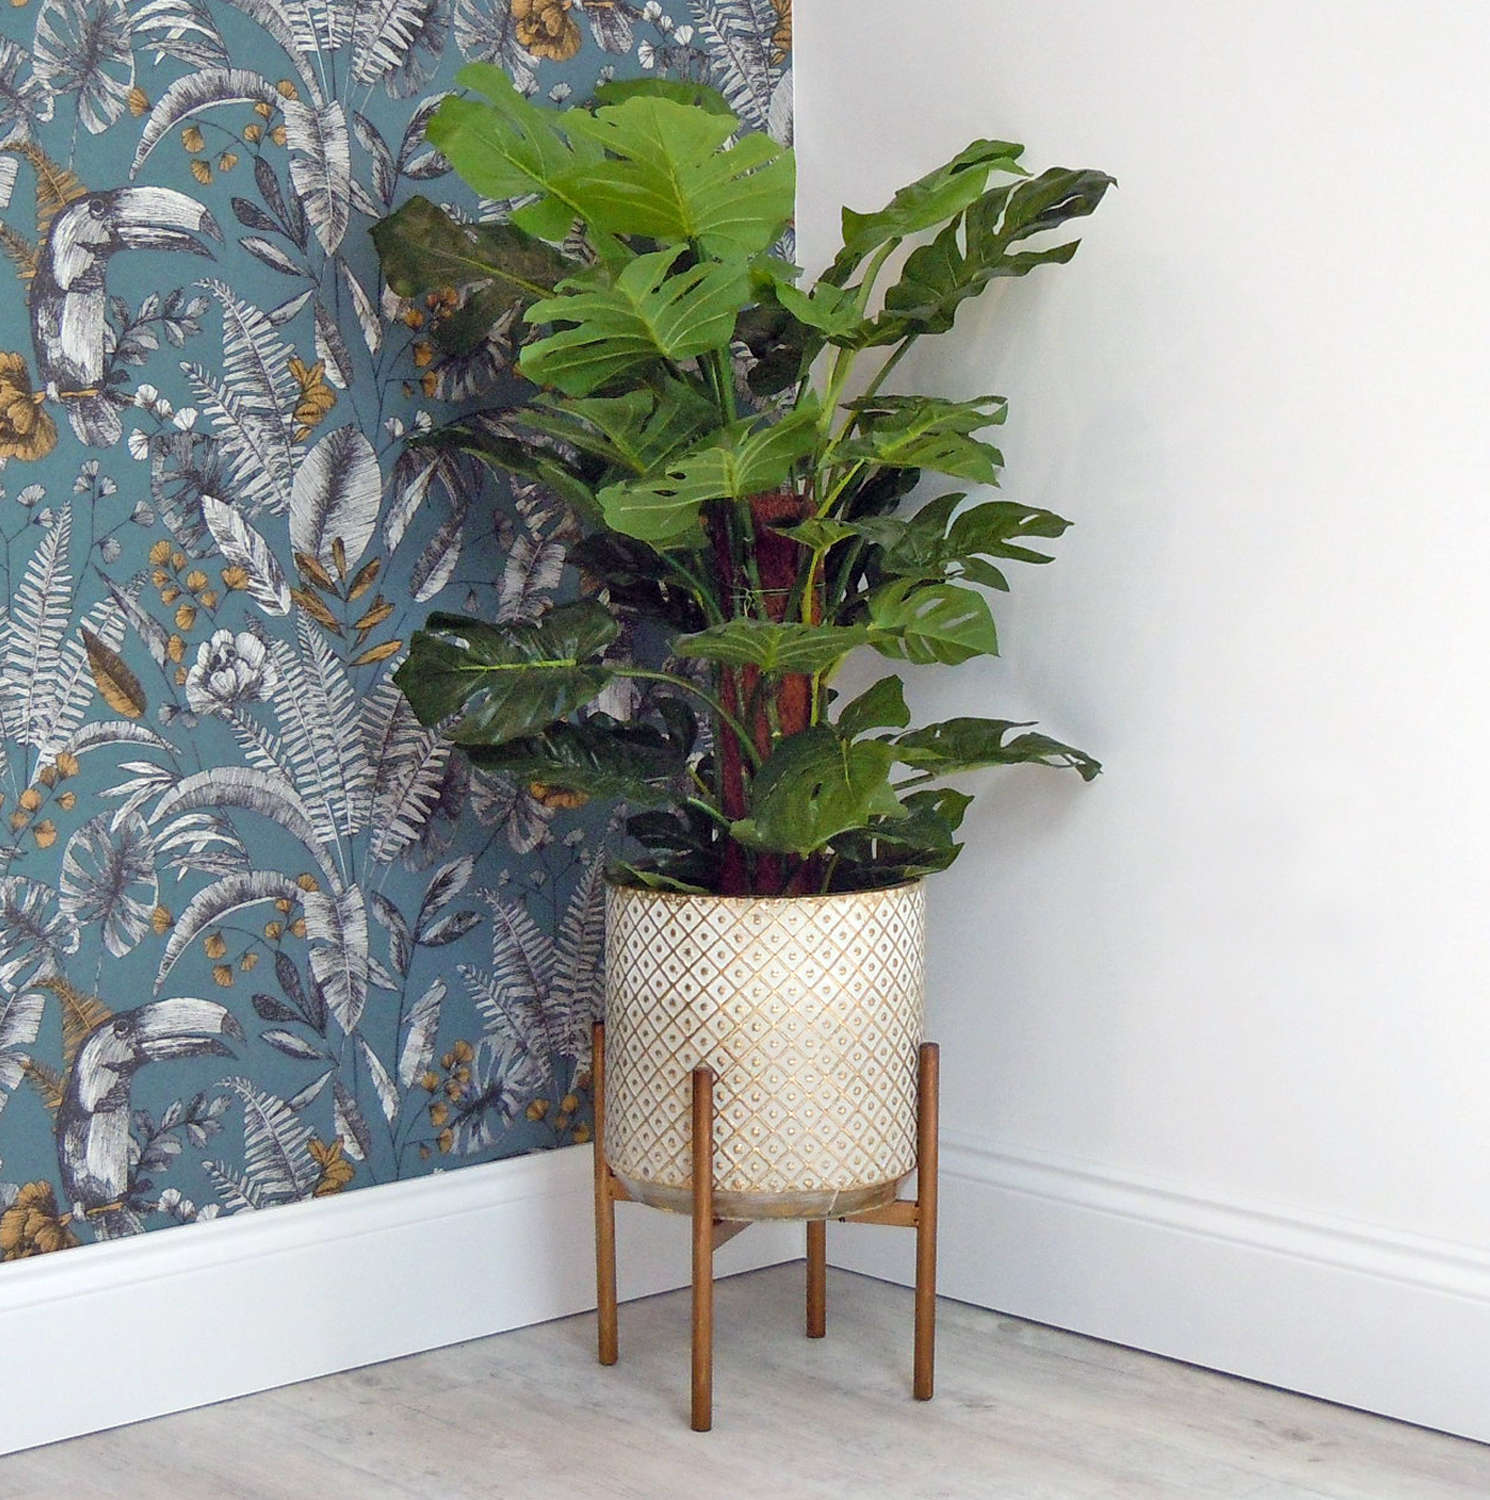 Layla Gold and White metal planter on a stand